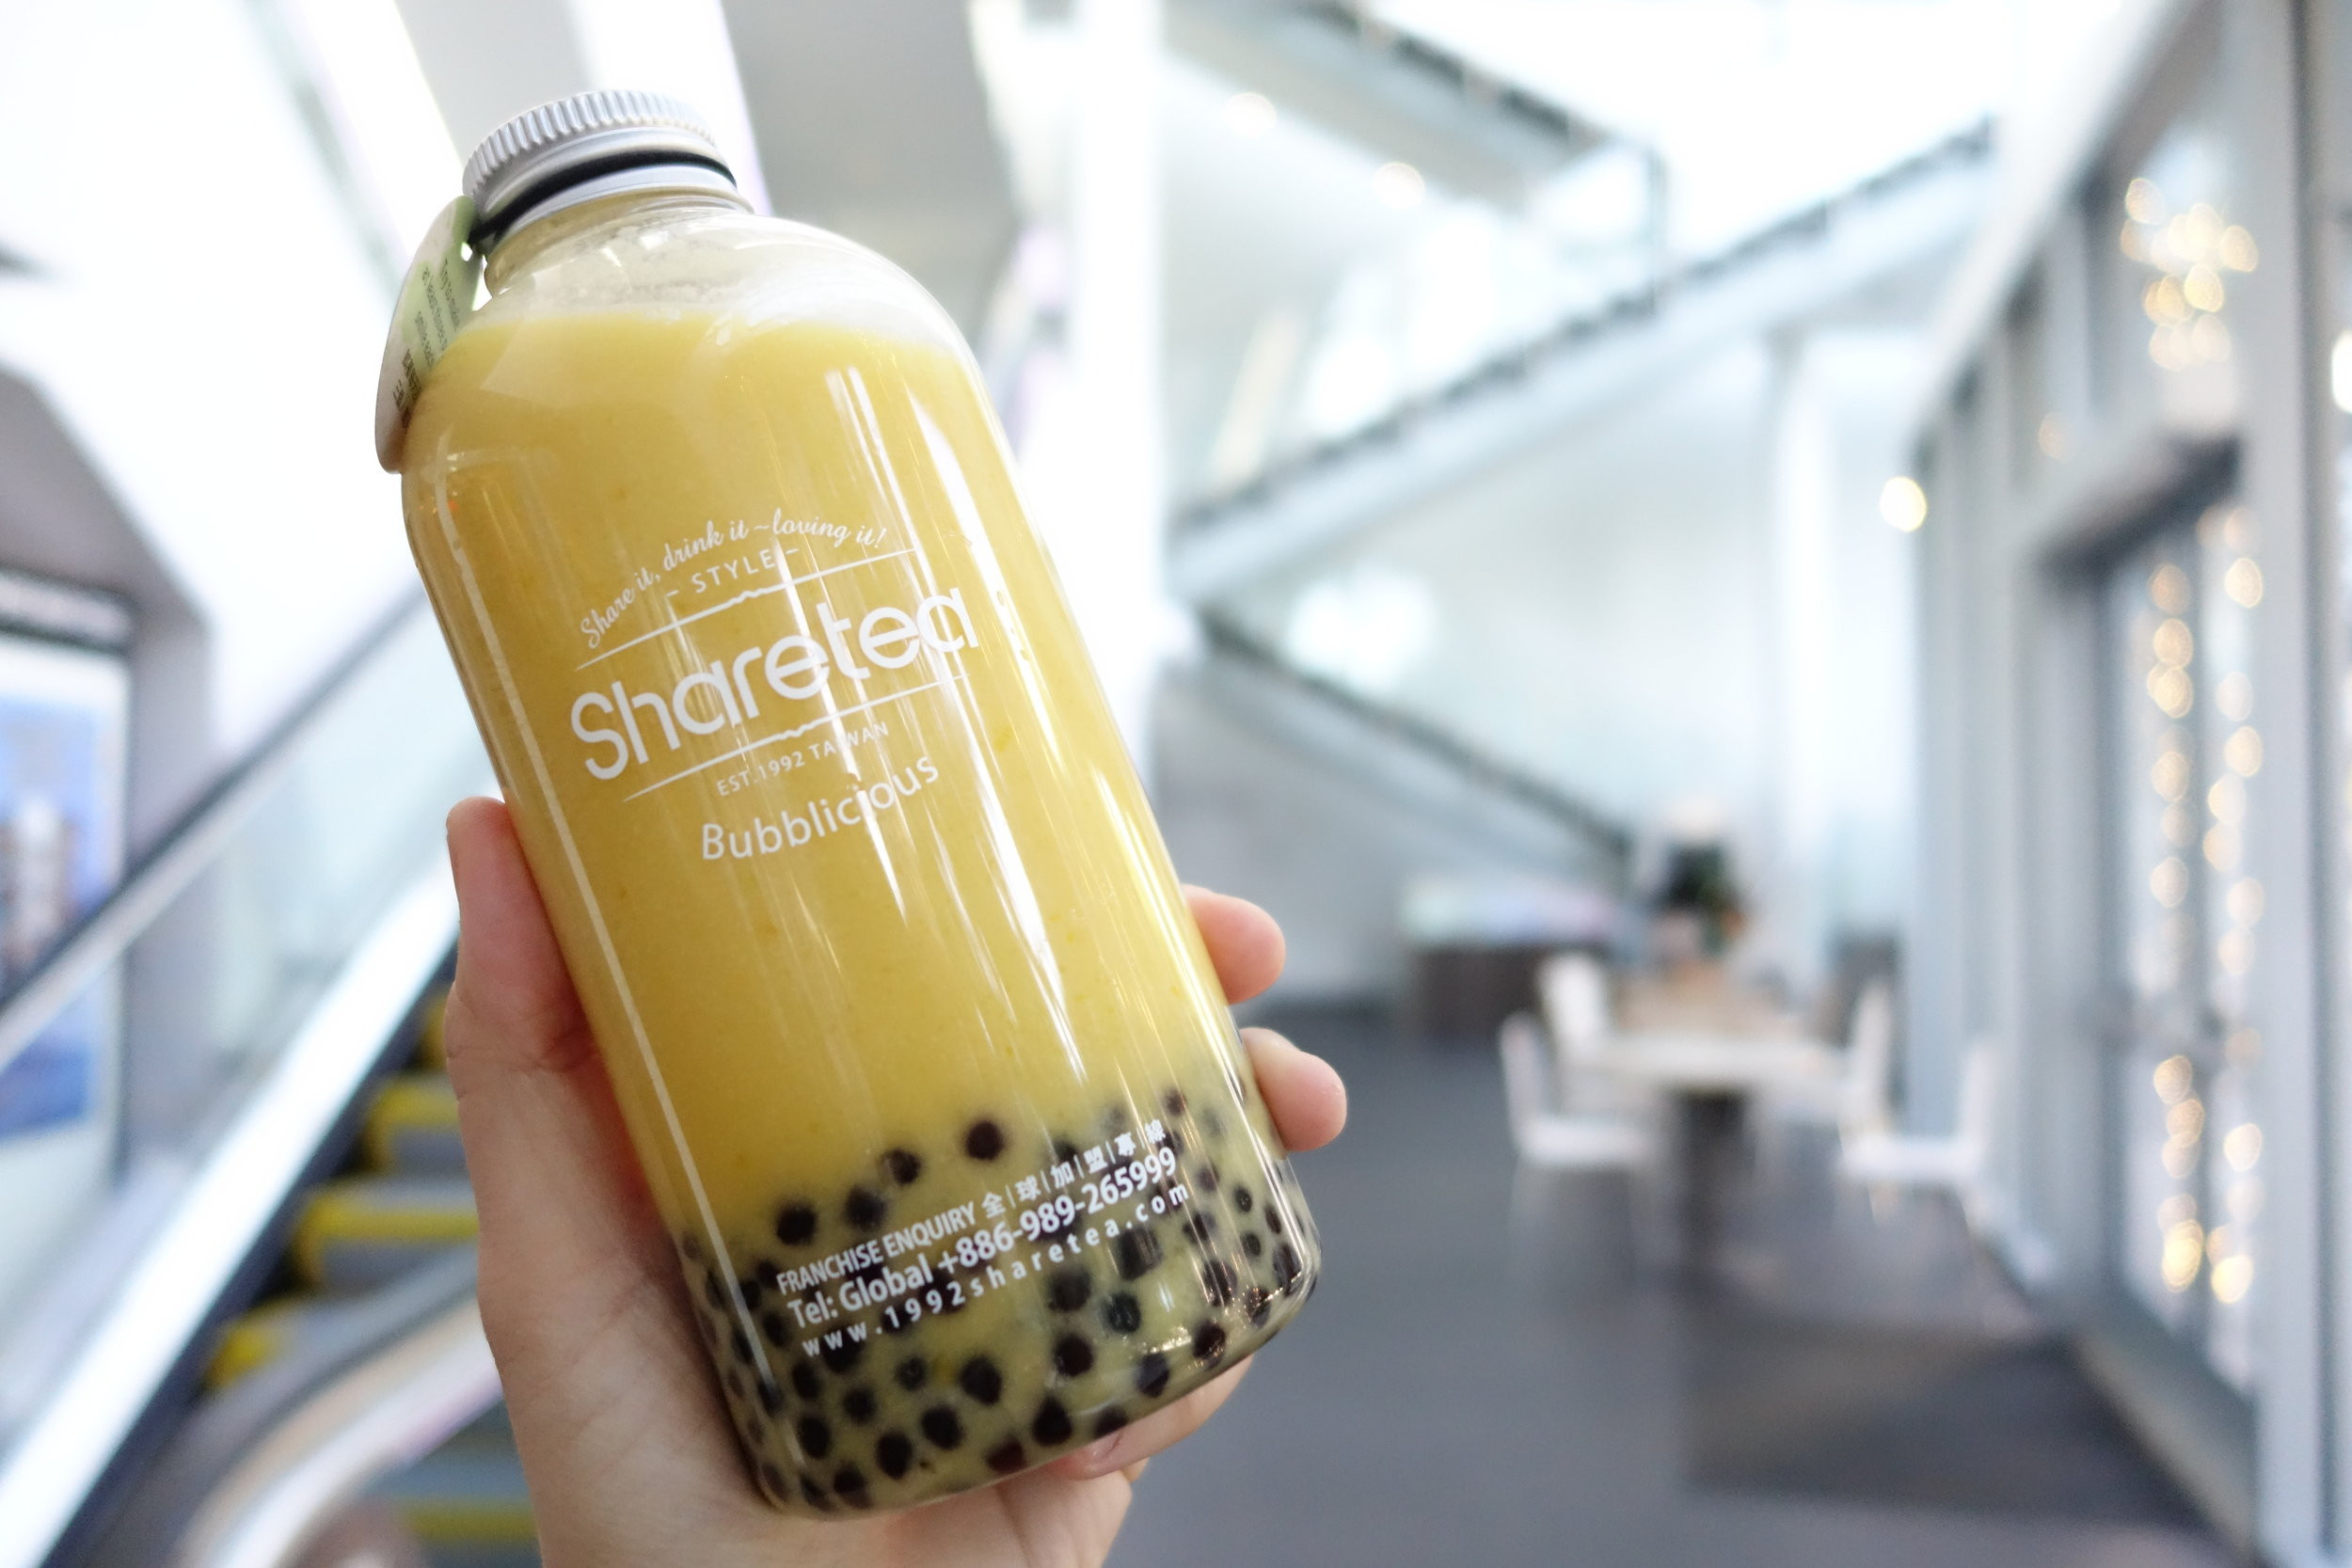 Mango Fruity Bottle Shake at the Sharetea Metreon in Downtown San Francisco. Copyright of   SandyByTheBay.com